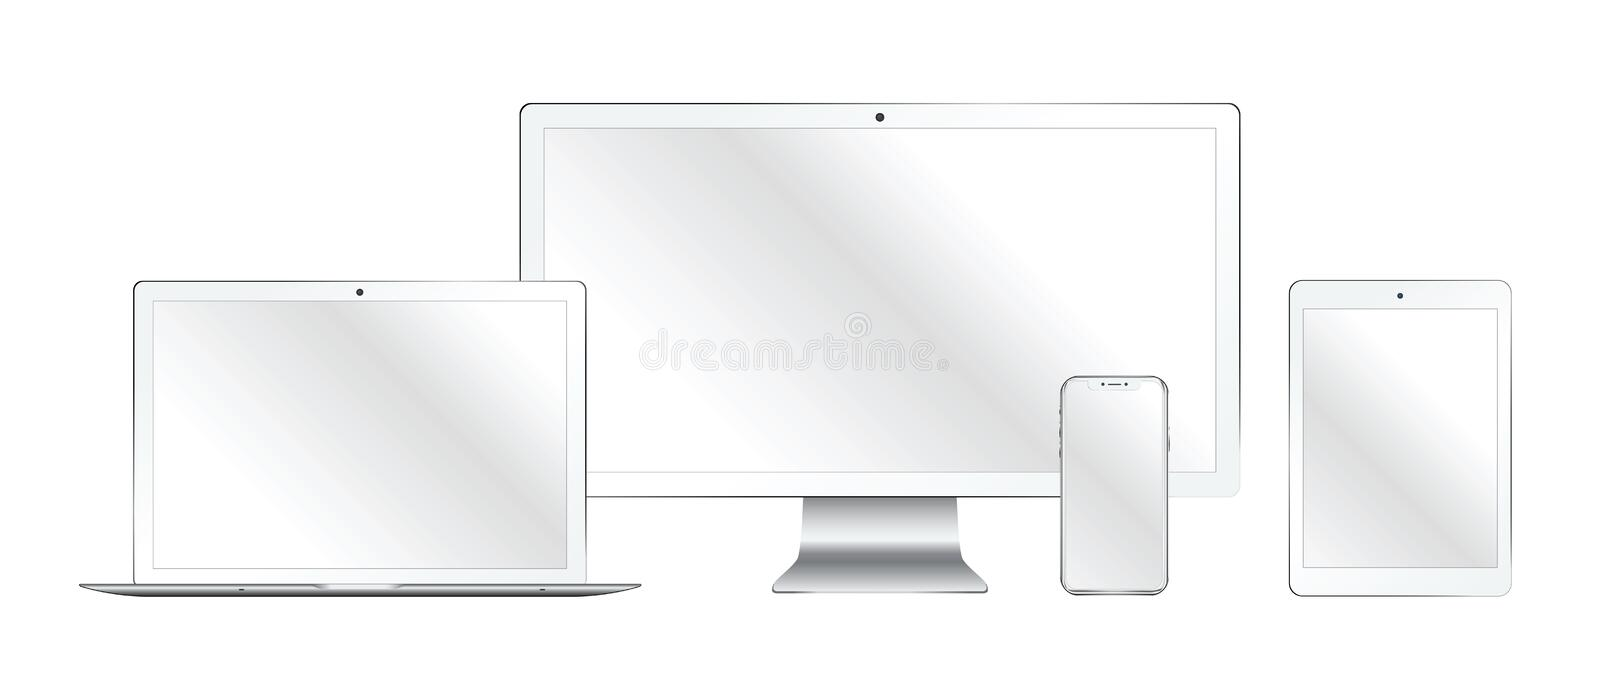 Set of realistic computer monitor, laptop, tablet, mobile phone vector illustration